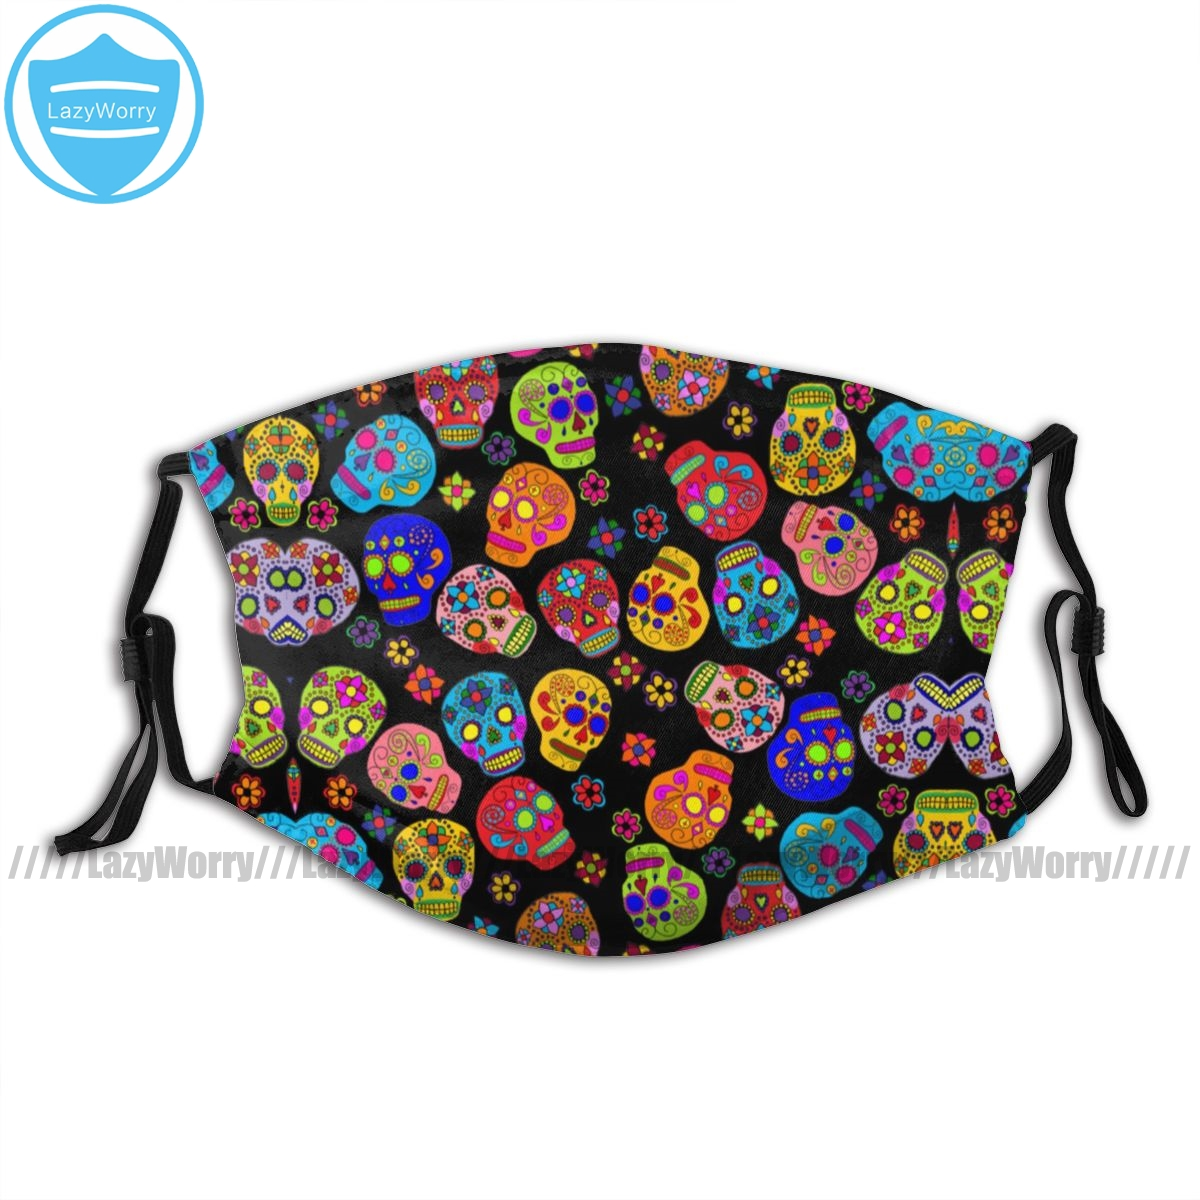 Day Of The Dead Mouth Face Mask Customizable Mexican Folk Art Sugar Skulls Facial Mask Pretty Adult Mask